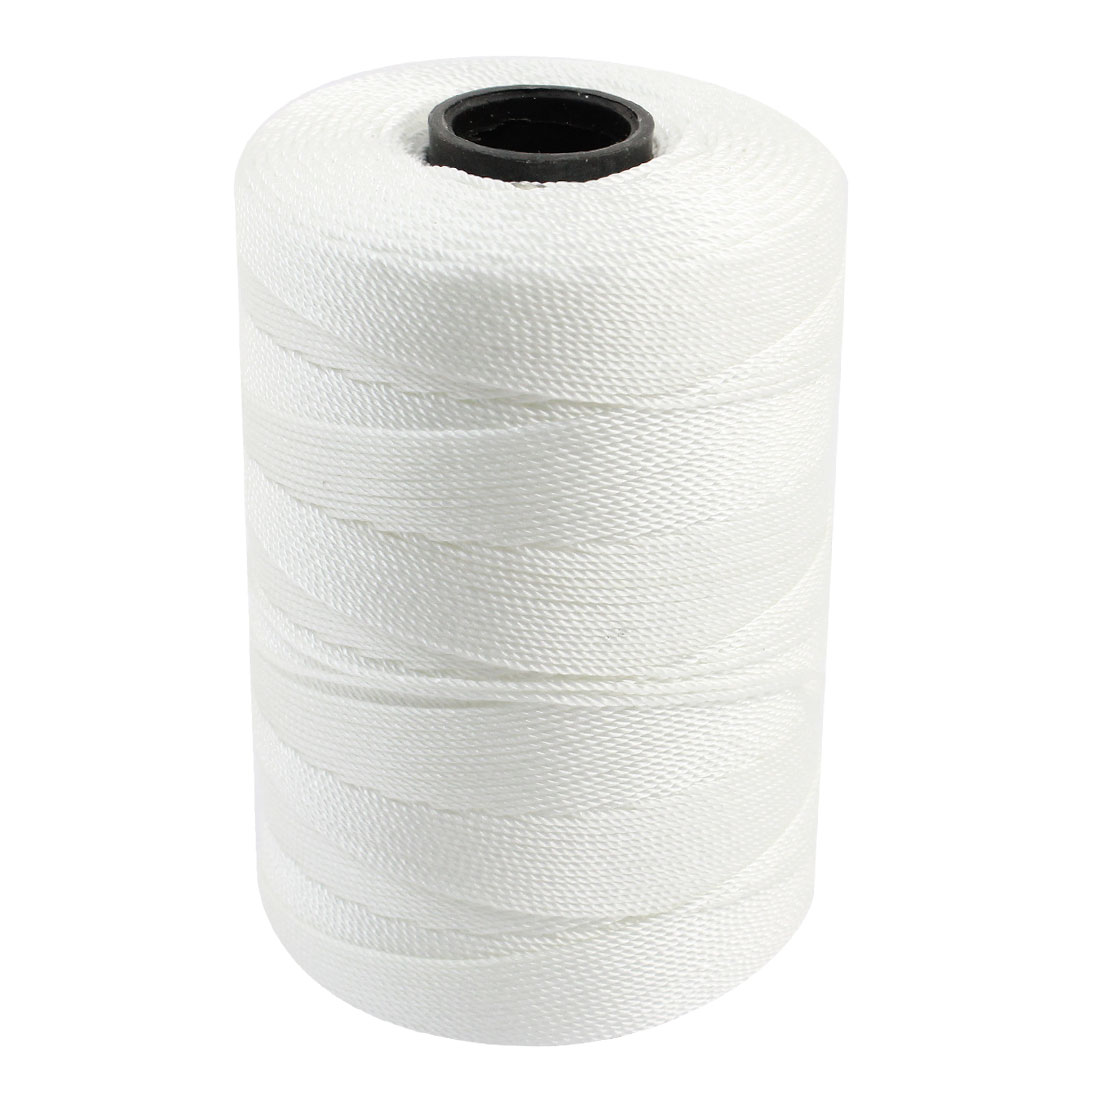 1mm Cord Dia Twisted Three Strand Nylon Sewing Rope String White